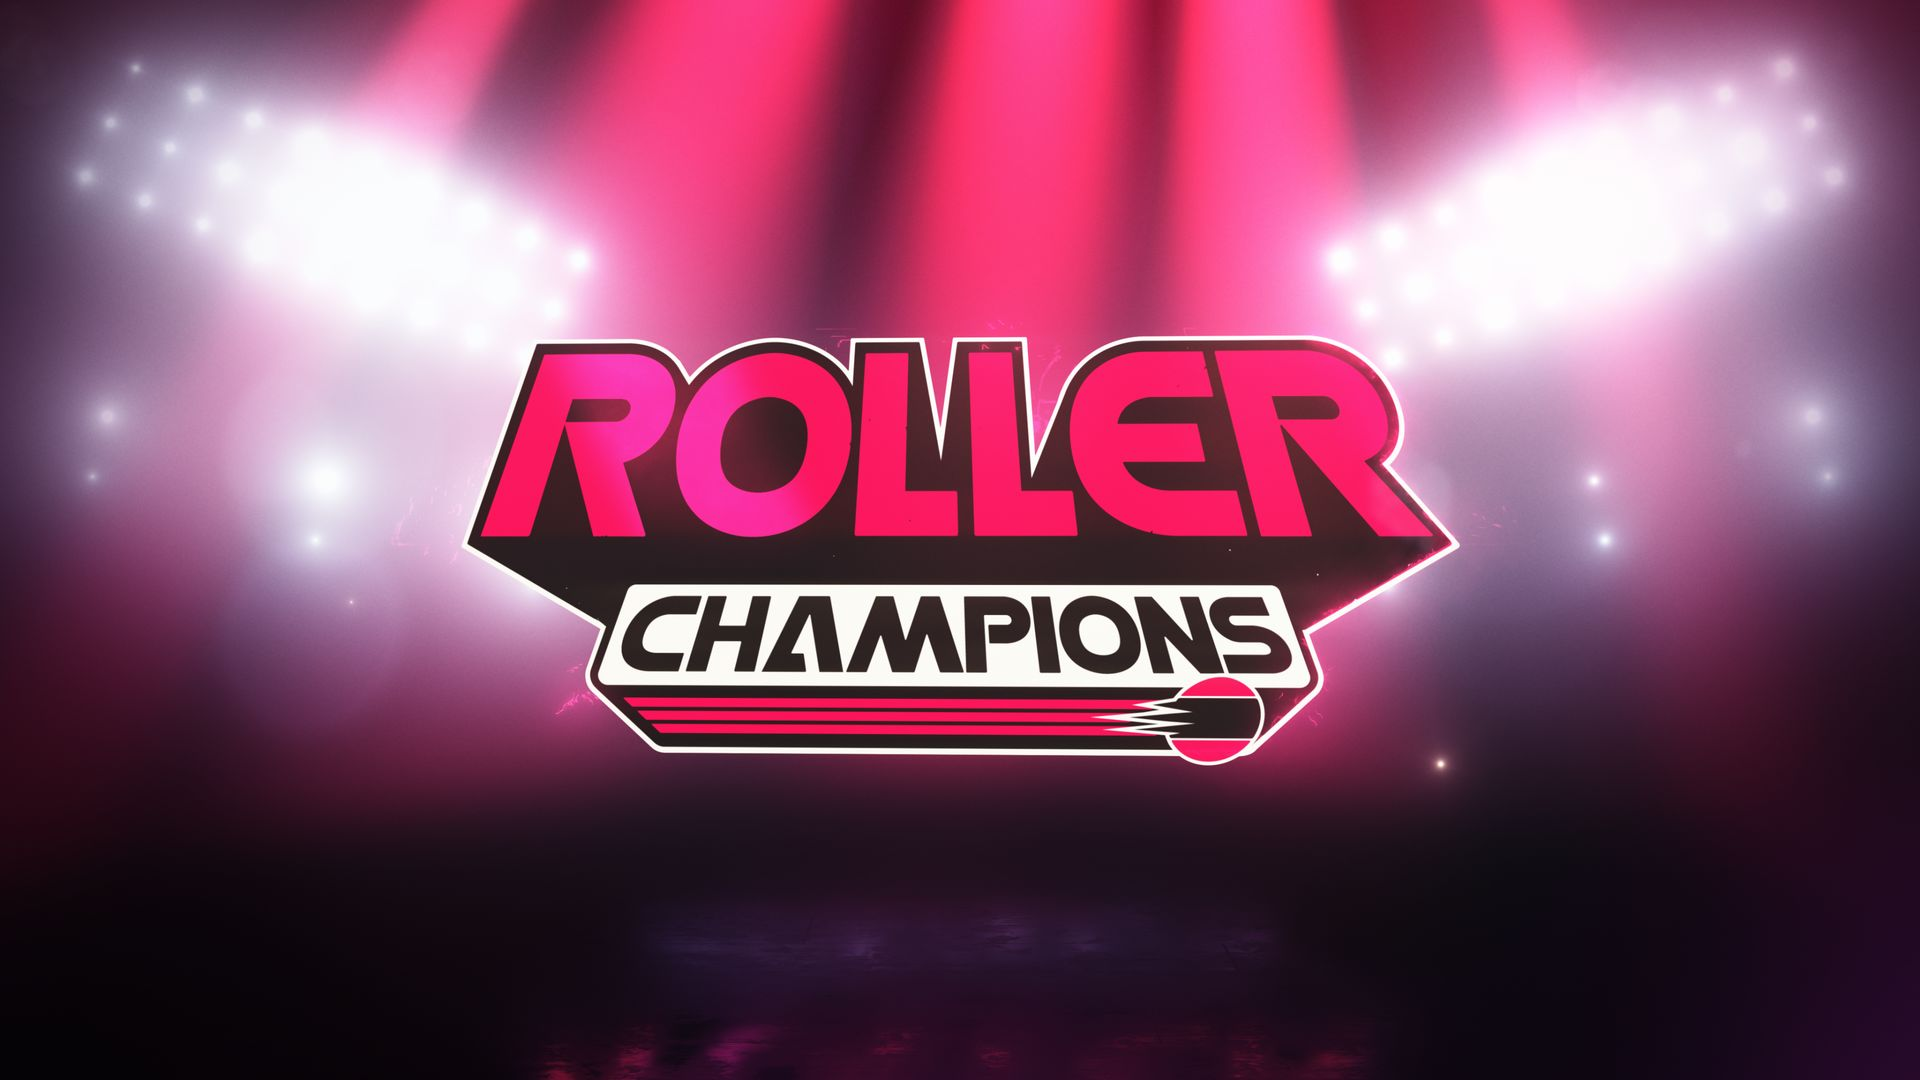 Roller Champions Logo with stadium lights in background